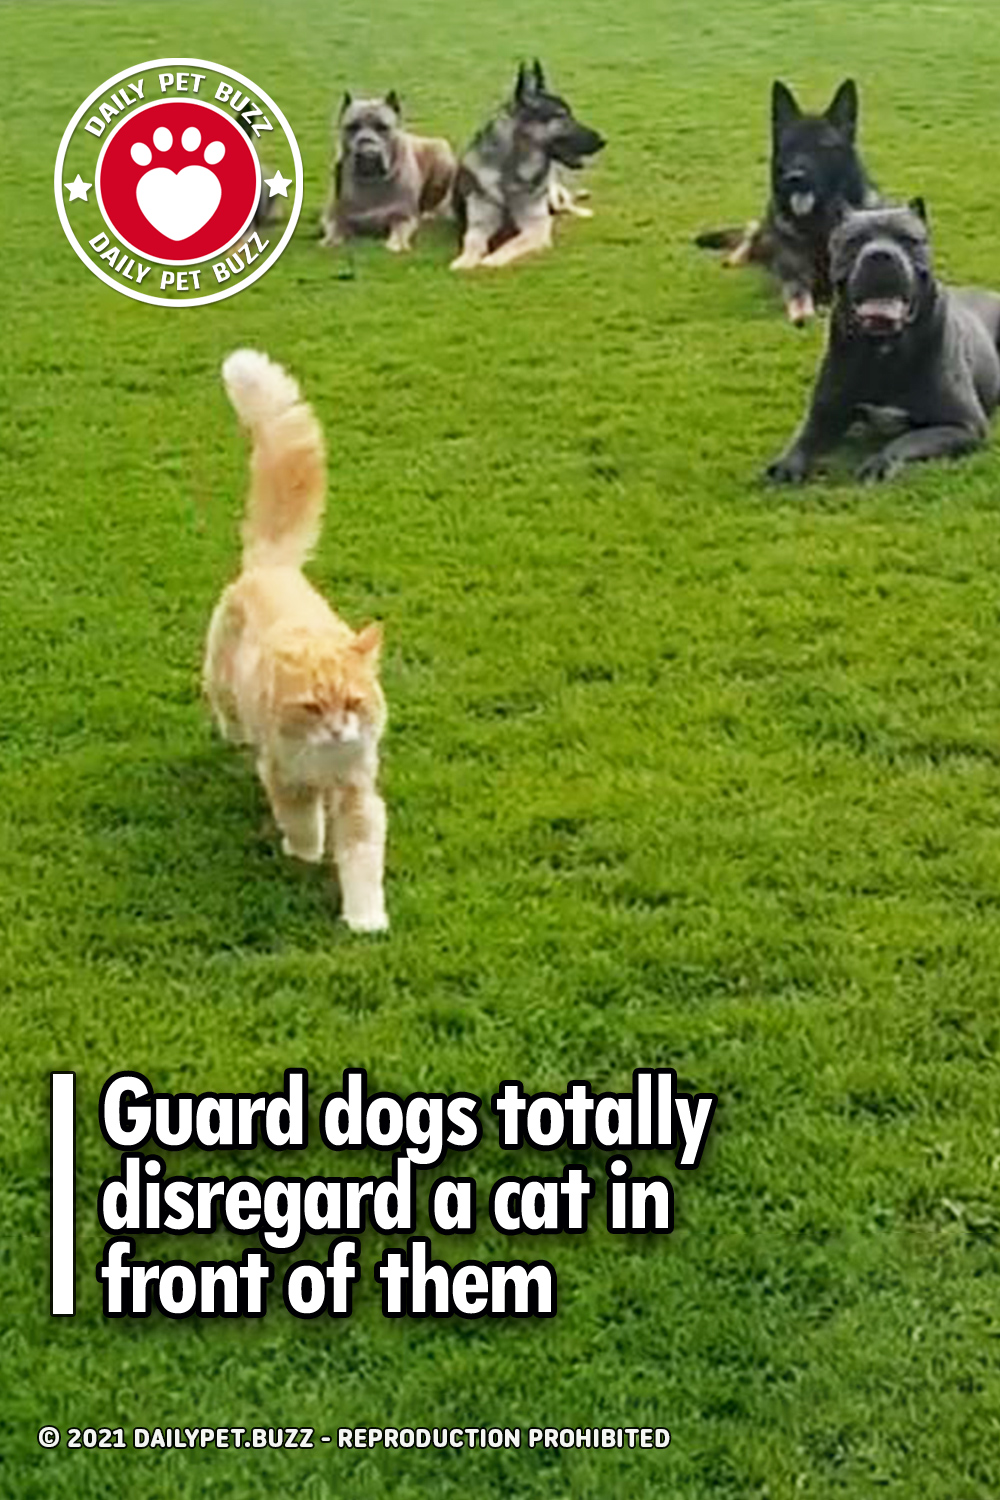 Guard dogs totally disregard a cat in front of them